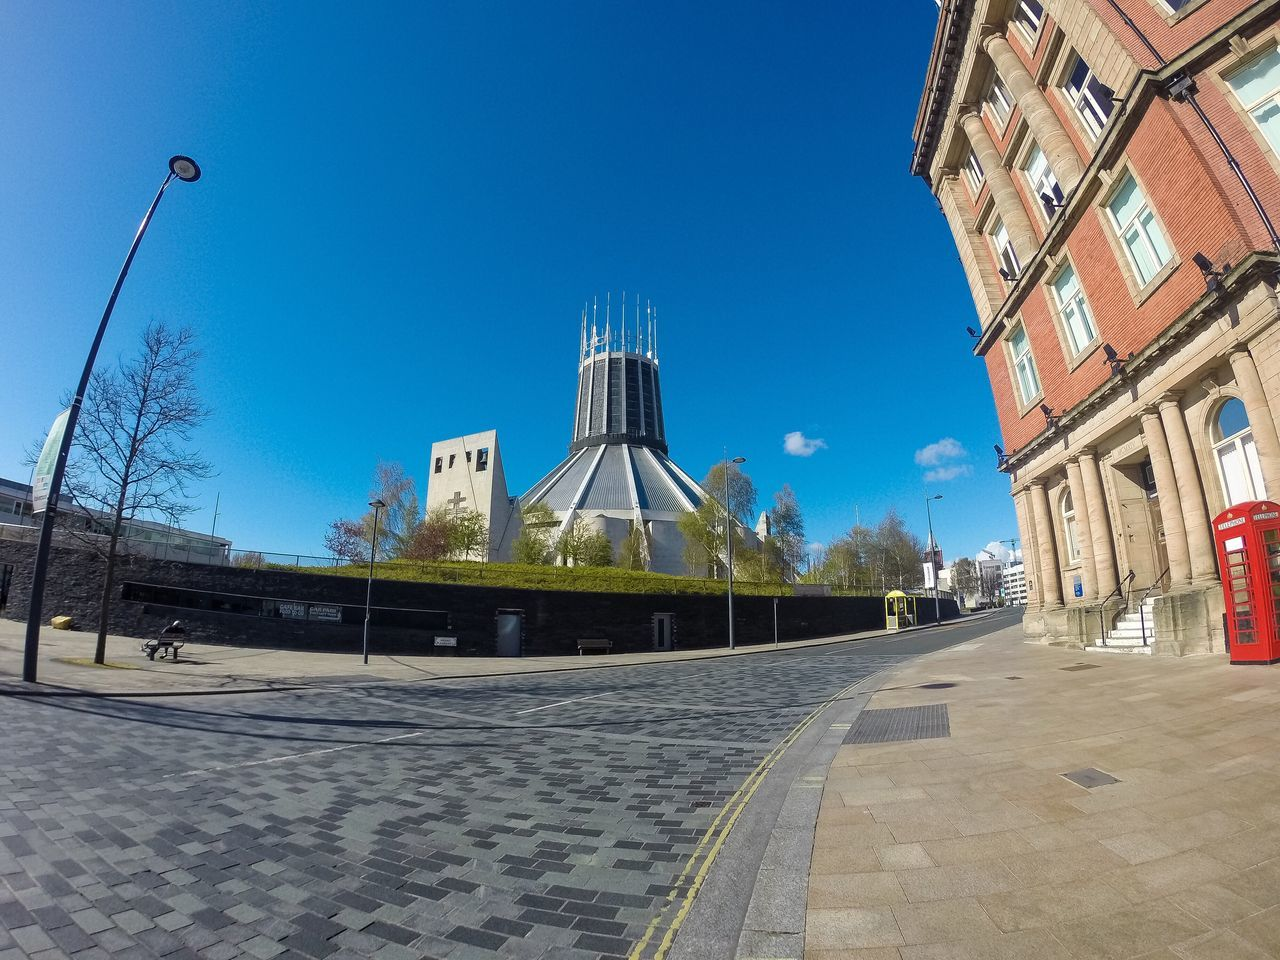 """Paddy's Wigwam"" Roman Catholic Metropolitan Cathedral In Liverpool...x Liverpool Cathedral Catholic Catholic Church Church Metropolitan Road Street Streetphotography Phonebooth Phonebox First Eyeem Photo Blue Sky Itsliverpool Visitliverpool Christ The King Liverpool Cathedral Merseyside Architecture Religion Religious  Religious Architecture"